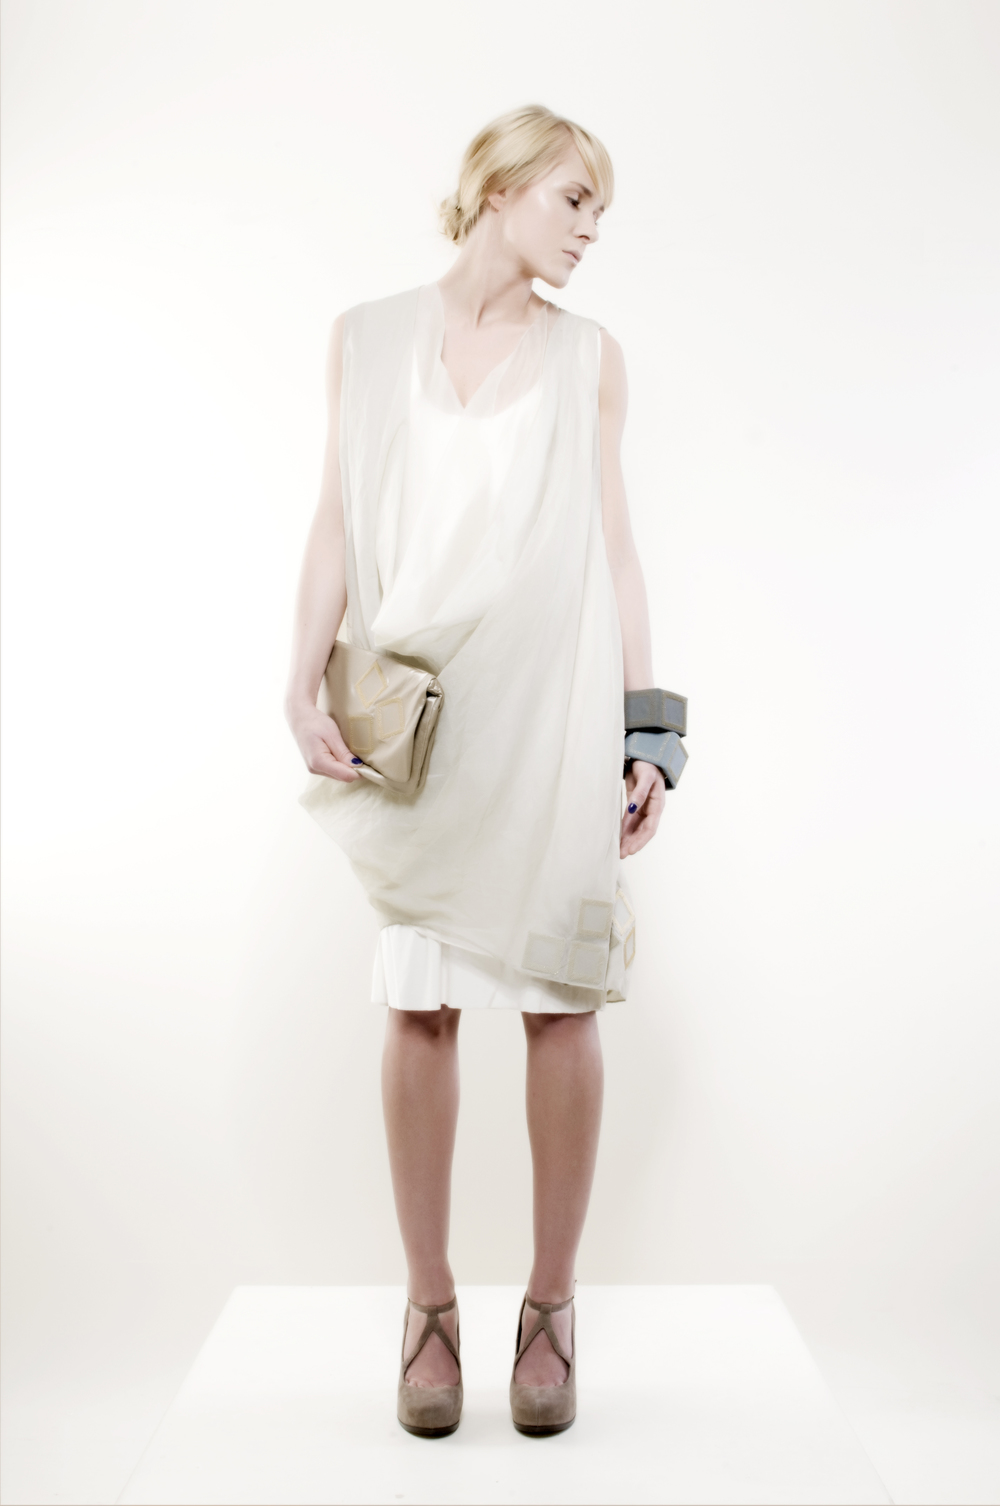 outfit-2a-Gravity-and-Levitation-Spring-Summer-Collection-Isabel-Wong-Light-Green-Organdy-Gold-CPU-draped-dress.jpg